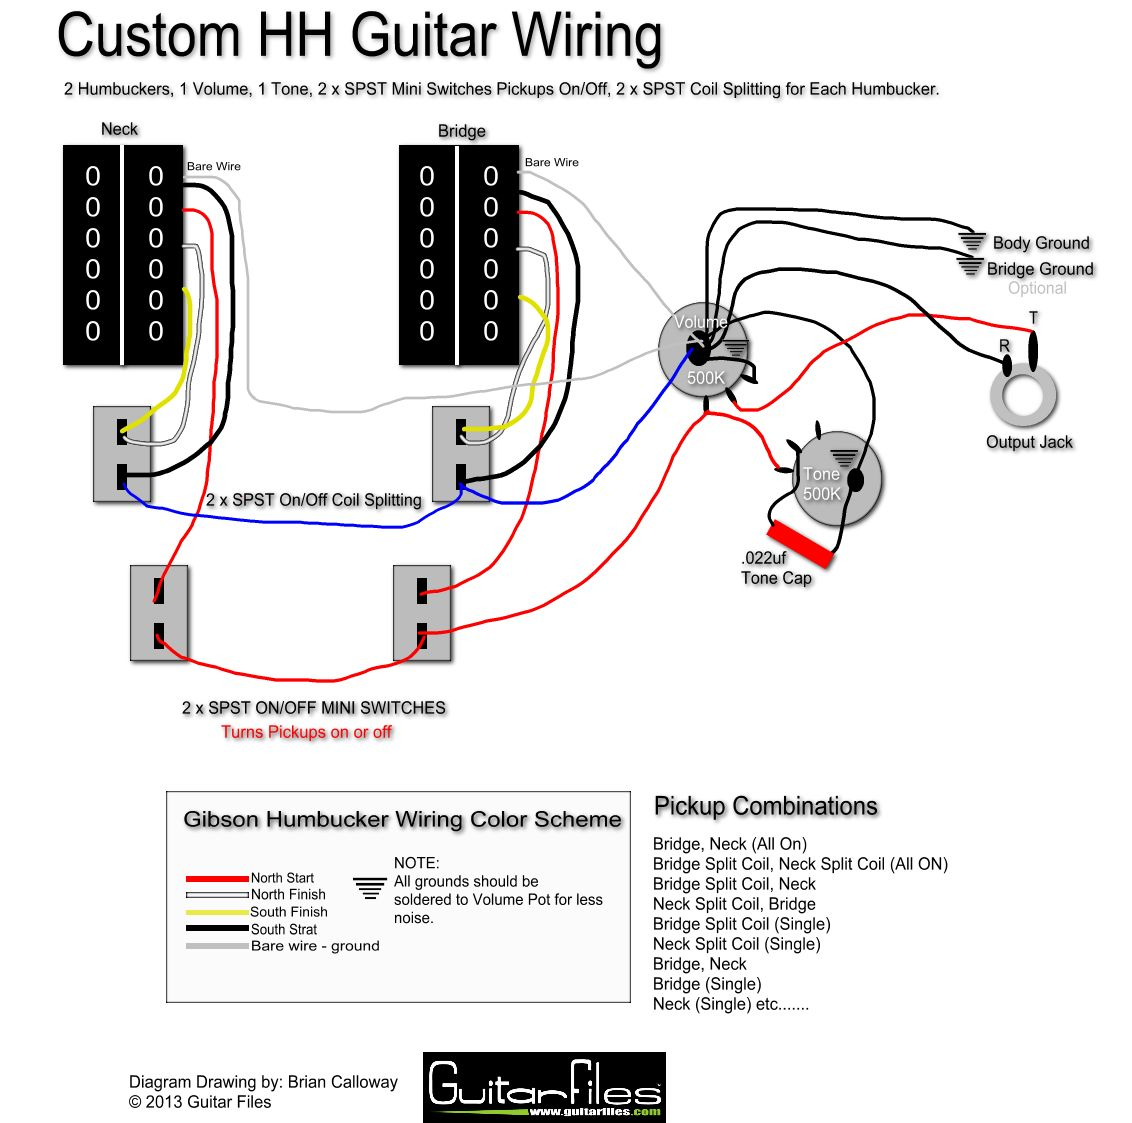 custom hh wiring diagram with spst coil splitting and spst switching  custom hh wiring diagram with spst coil splitting and spst switching electronic schematics, guitar pickups